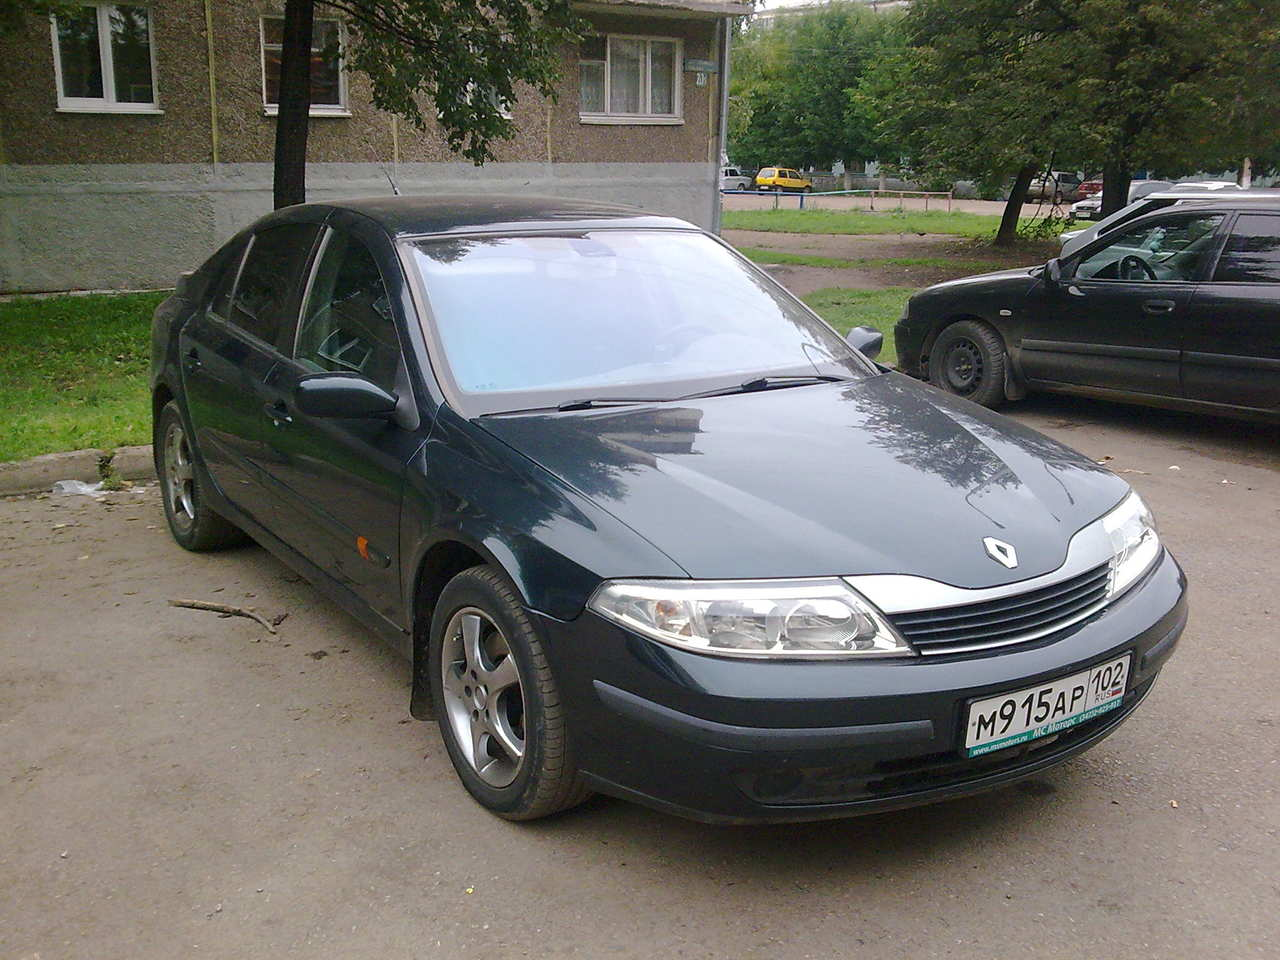 used 2001 renault laguna photos 1600cc gasoline ff manual for sale. Black Bedroom Furniture Sets. Home Design Ideas